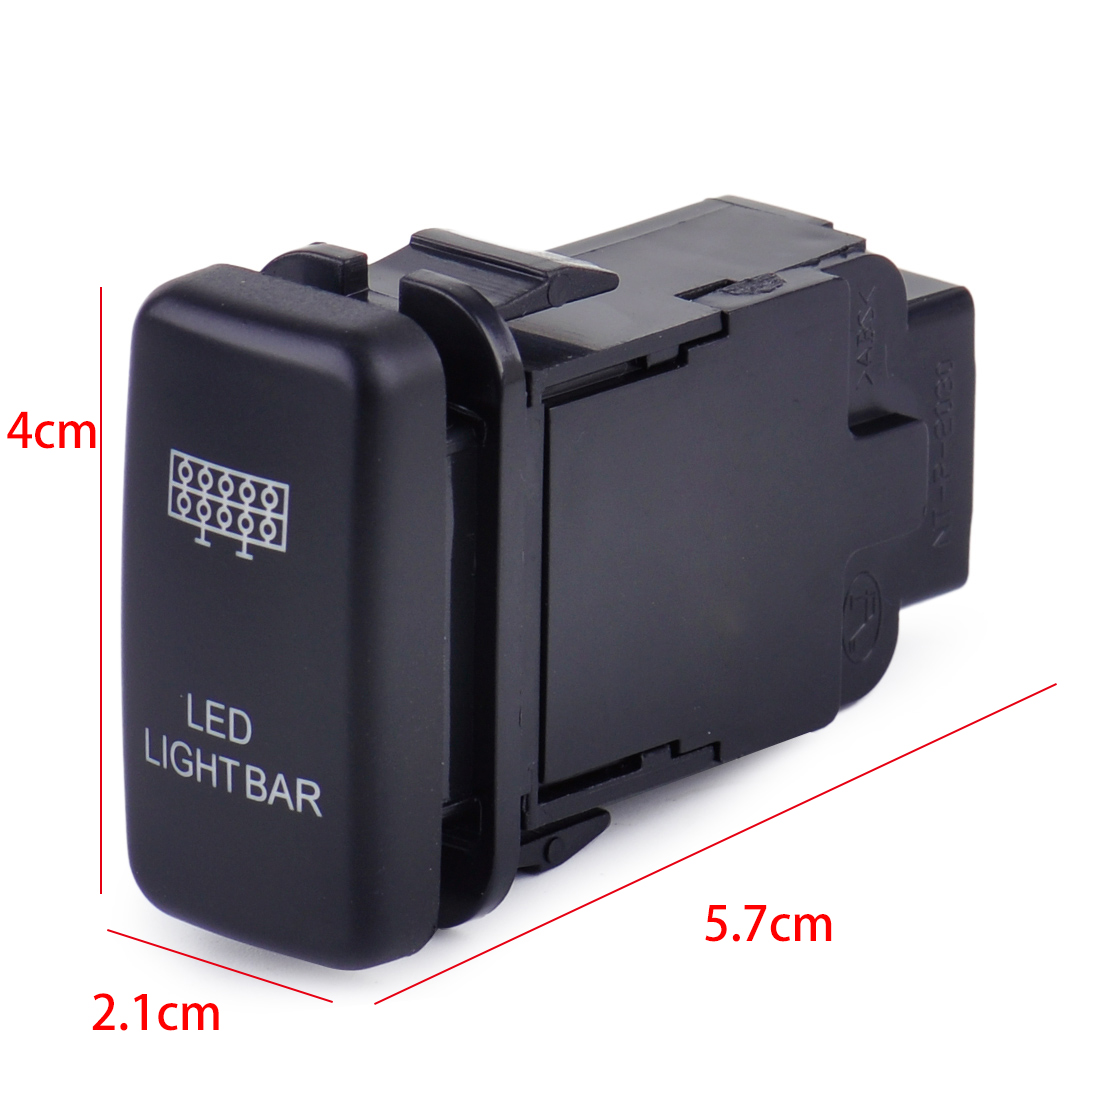 12v blue led light bar on off push switch fit toyota hilux prado 3 led light bar switch reverse light switch driving light switch spot light switch zombie light switch fog light switch are available aloadofball Image collections